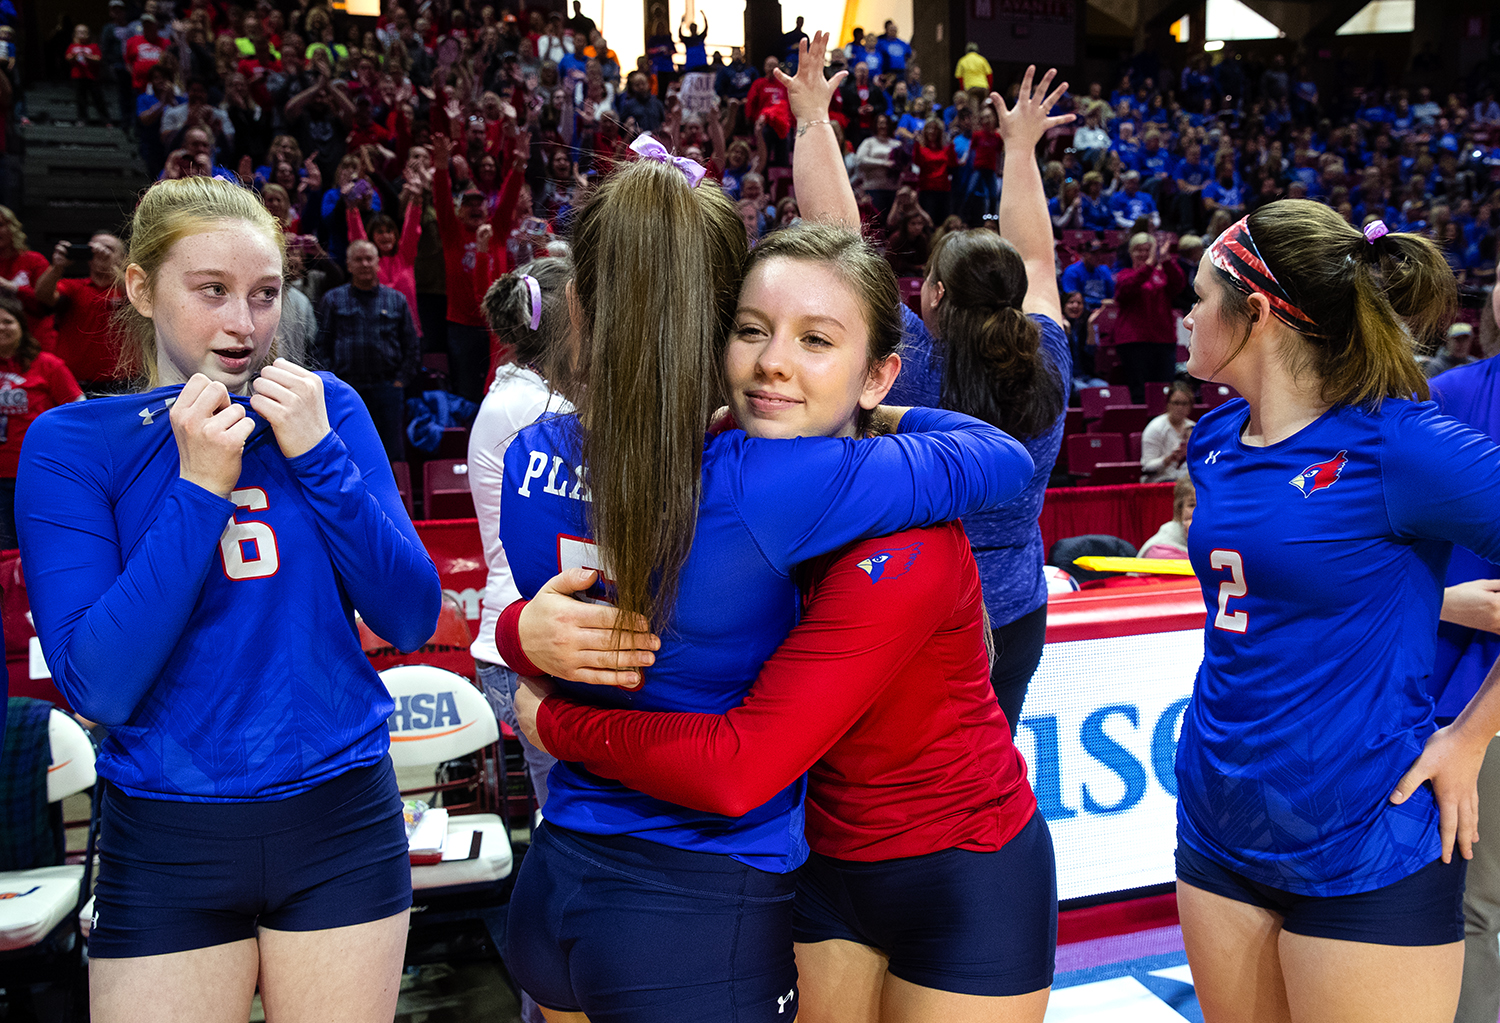 Pleasant Plains' MacKenzie Houser hugs Emma Grieser after the Cardinals defeated Galena during the IHSA Class 2A Volleyball championship at Redbird Arena in Normal Saturday, Nov. 10, 2018. [Ted Schurter/The State Journal-Register]